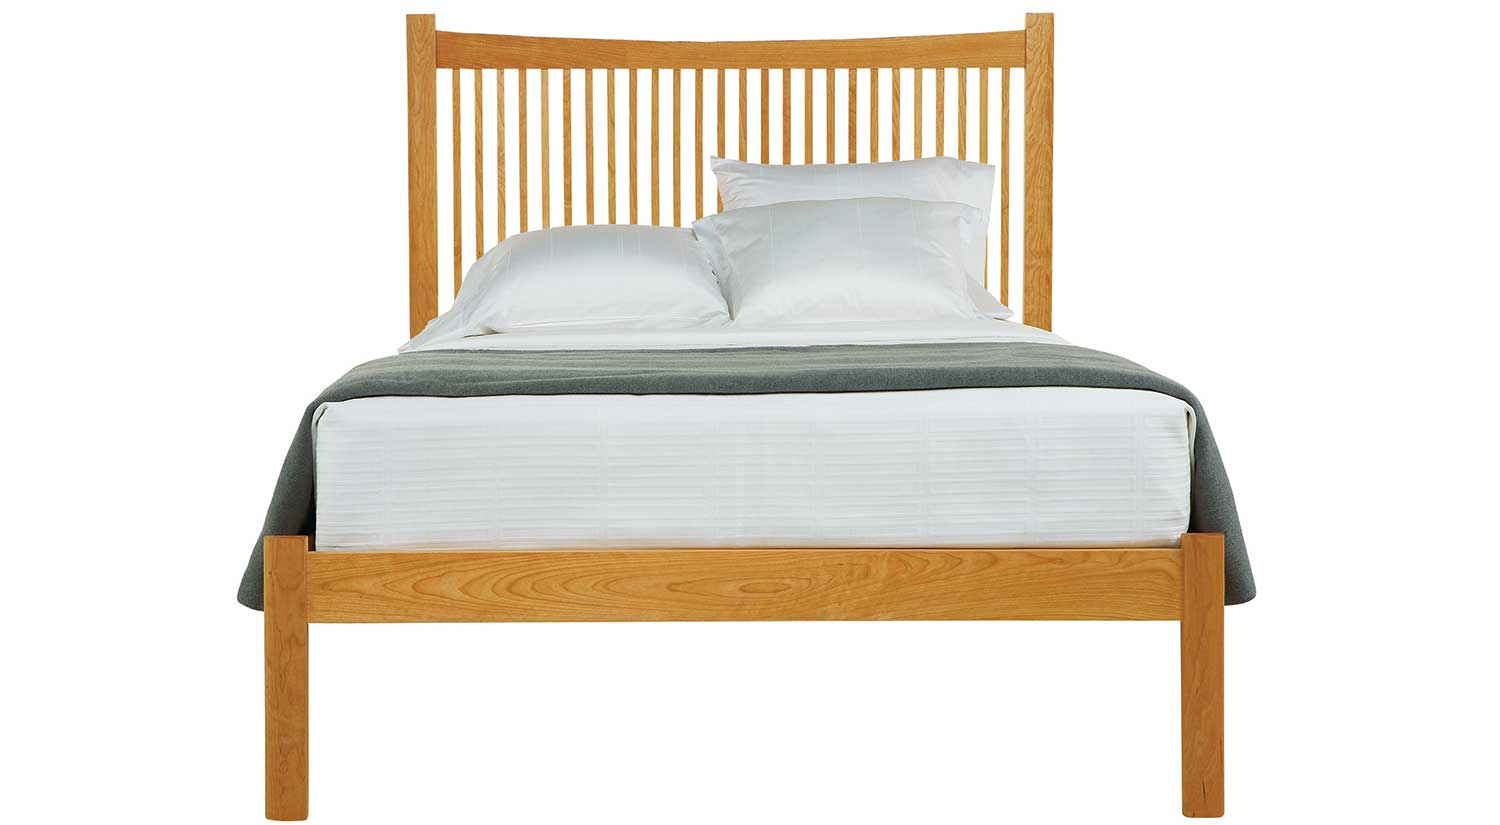 Circle Furniture Heartwood Low Profile Bed Bedroom Furniture